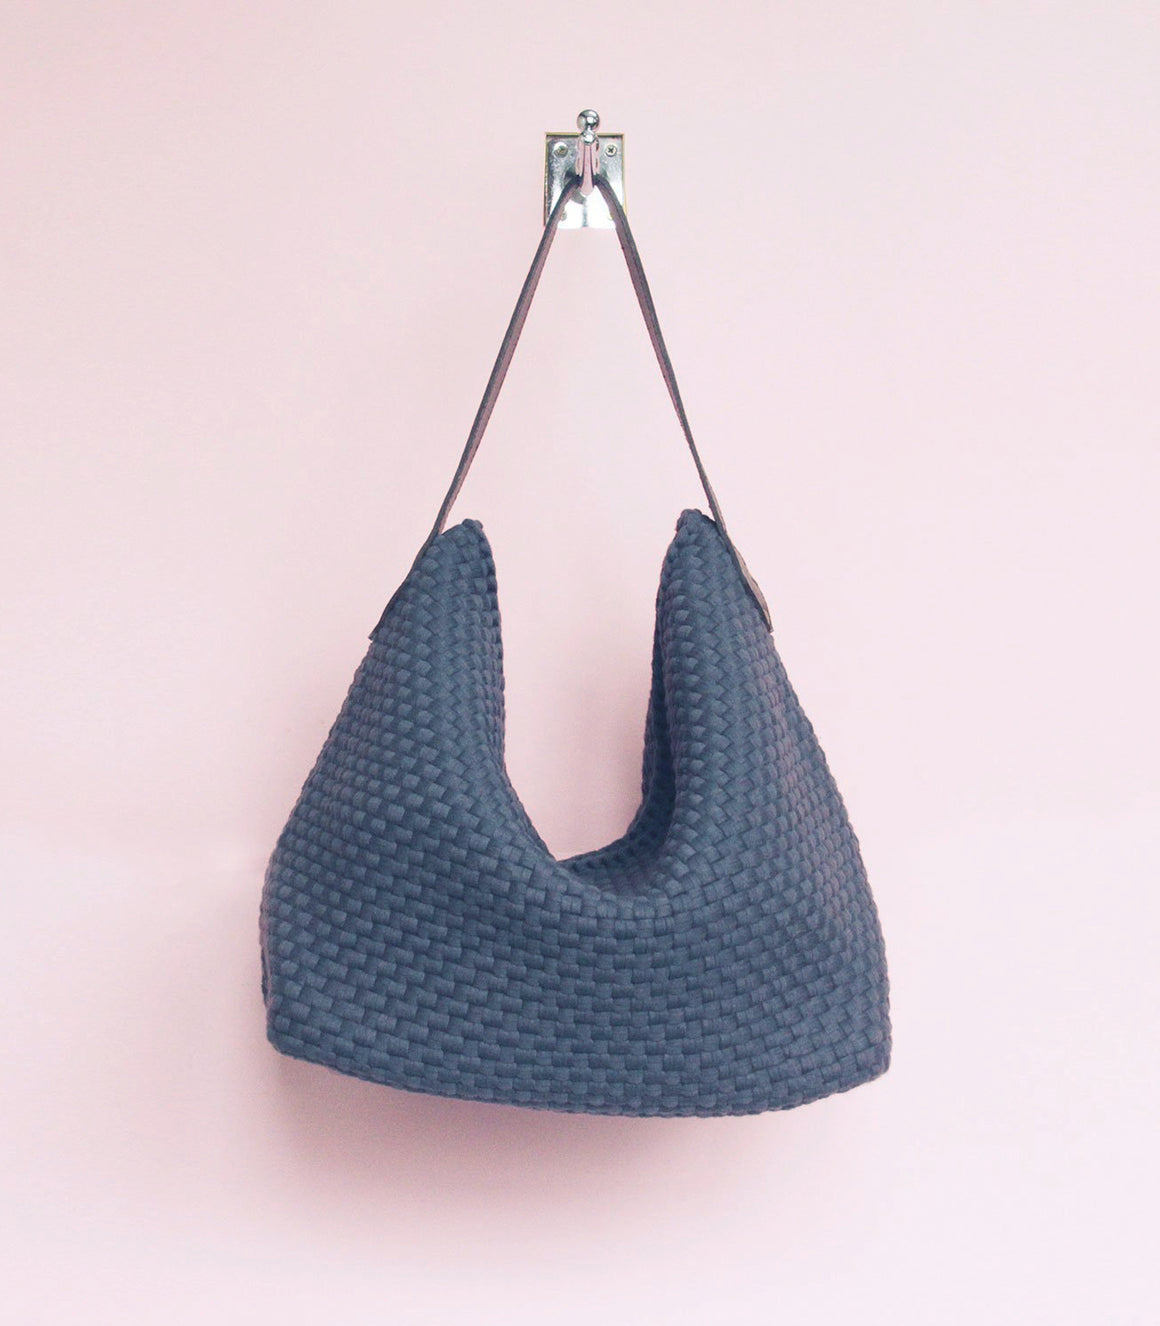 Buslo Hobo Bag in Fuchsia hanging on a wall - Rags2Riches